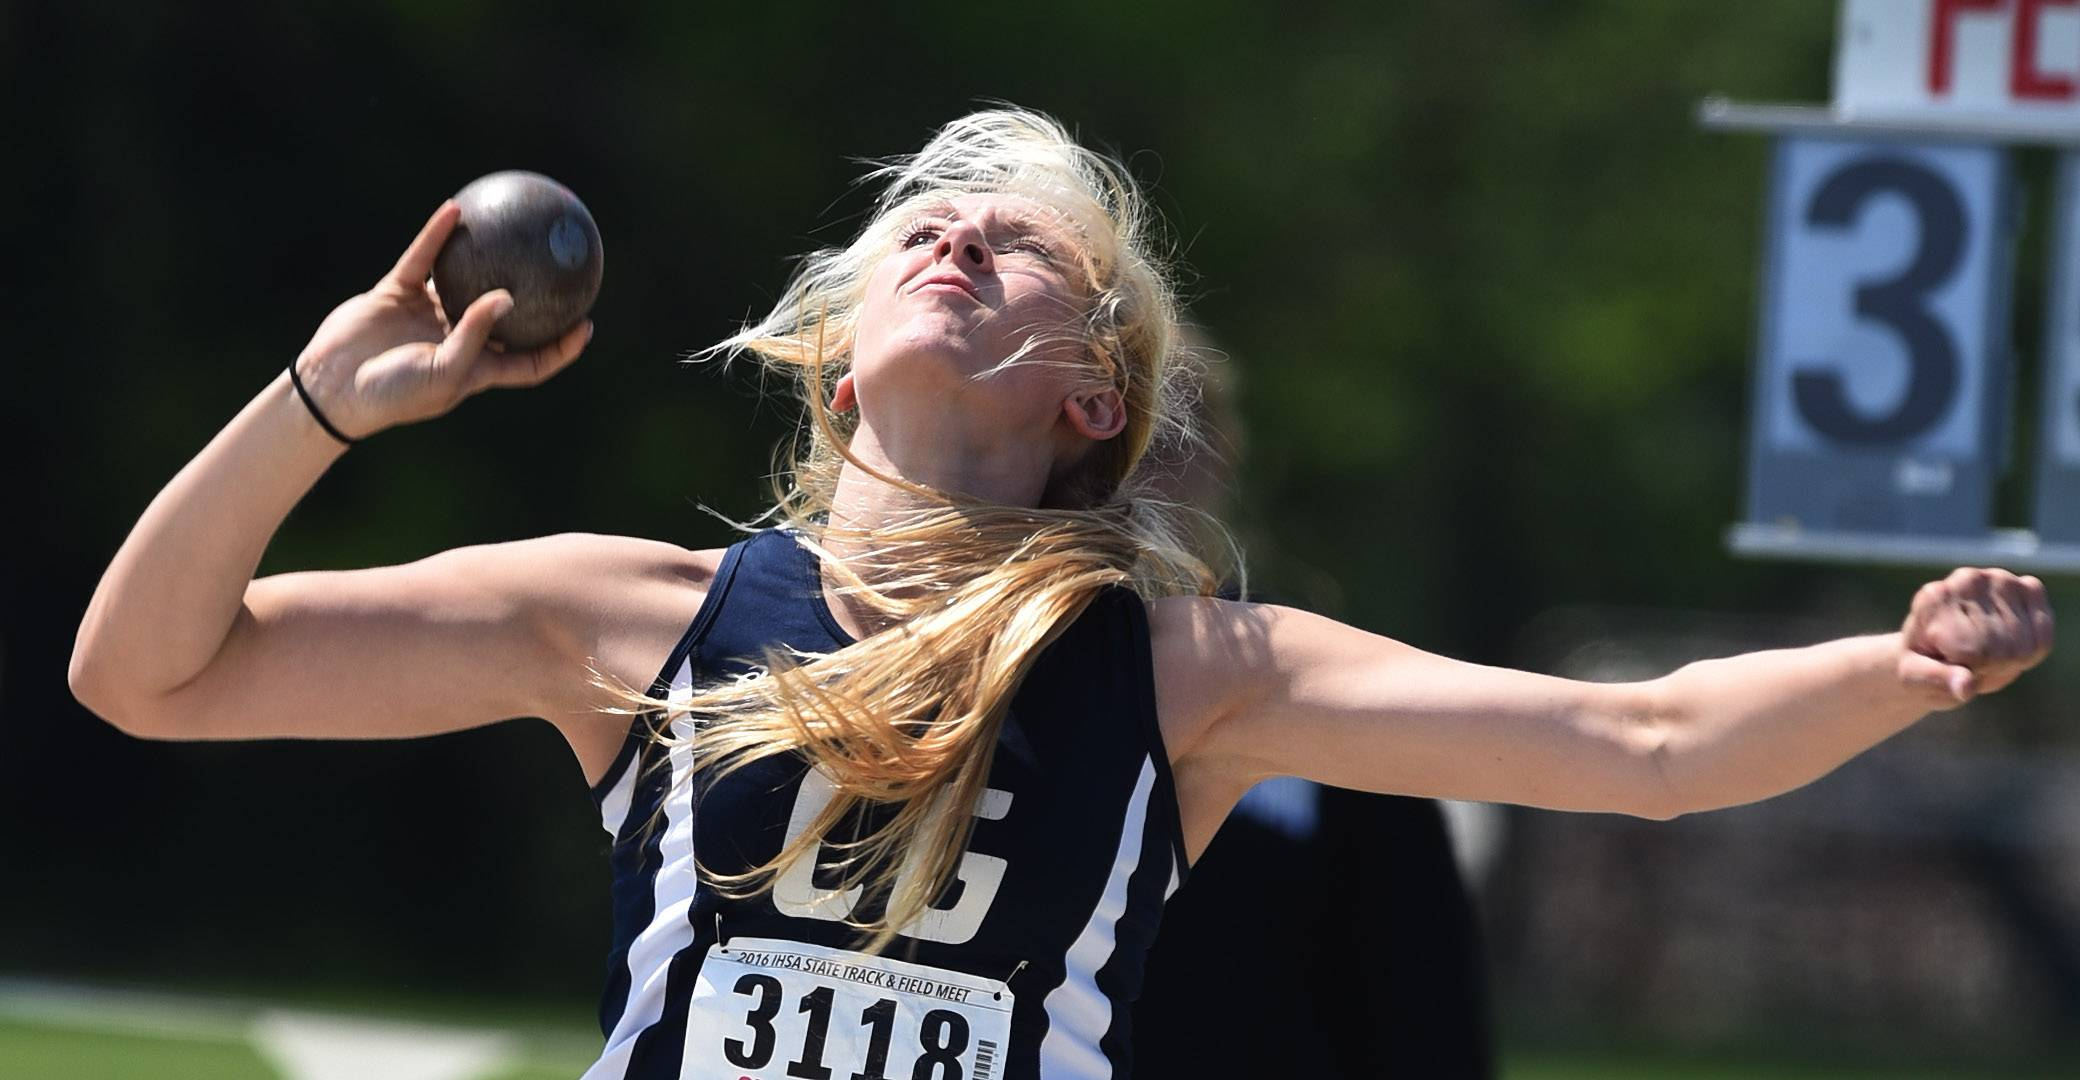 Cary Grove's Nikki Freeman throws in the Class 3A shot put during the IHSA girls state track finals in Charleston Saturday. Freeman finished fourth in the event and also won the state championship in the discus throw.